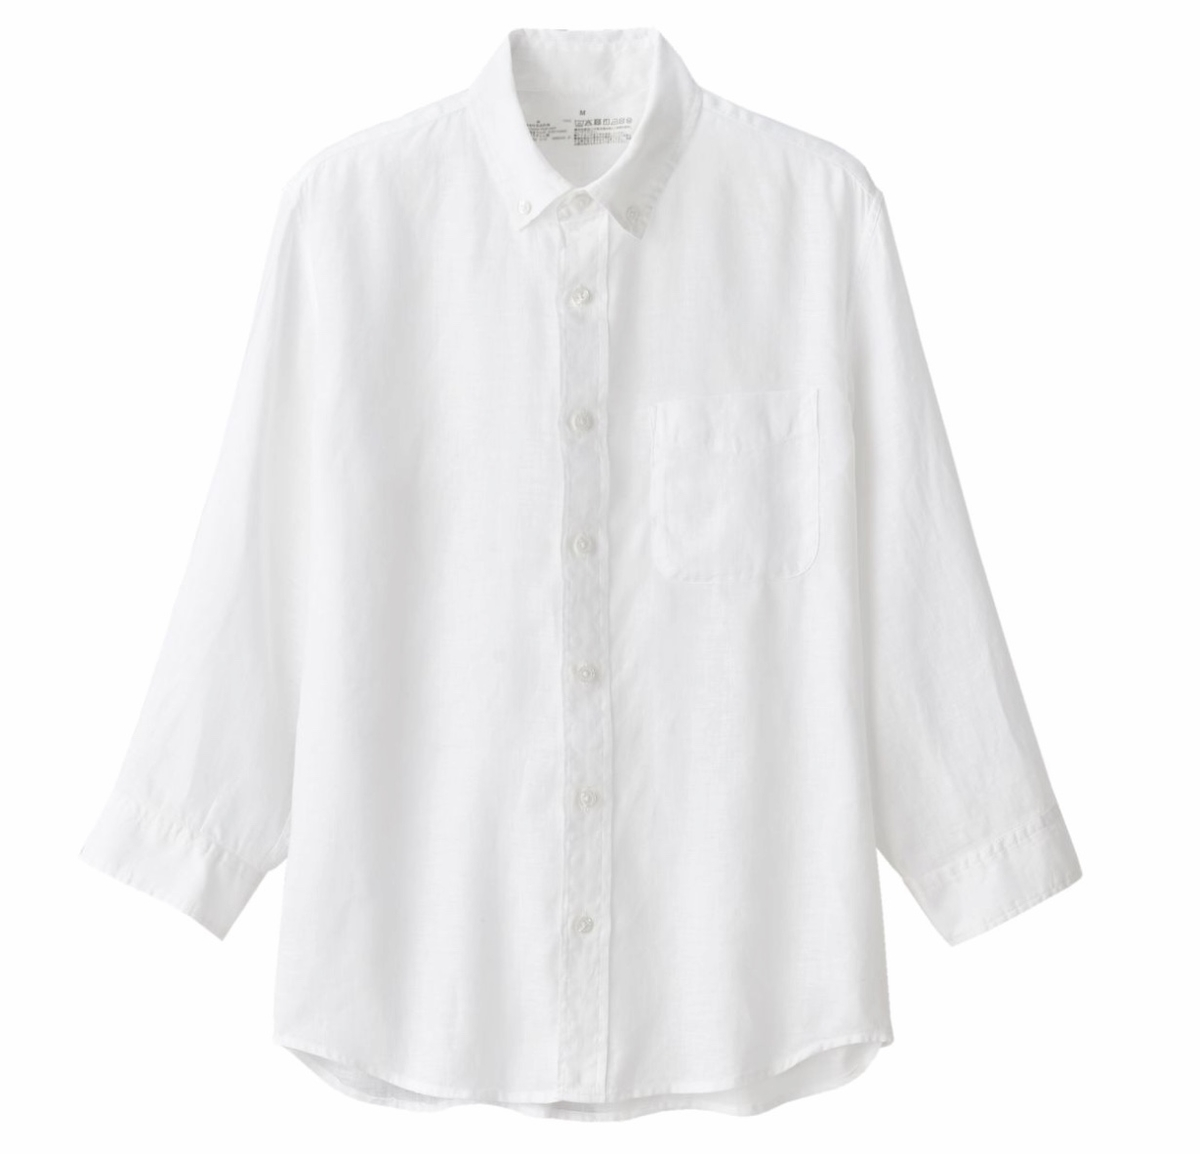 f:id:fortheshirt:20190603115914j:plain